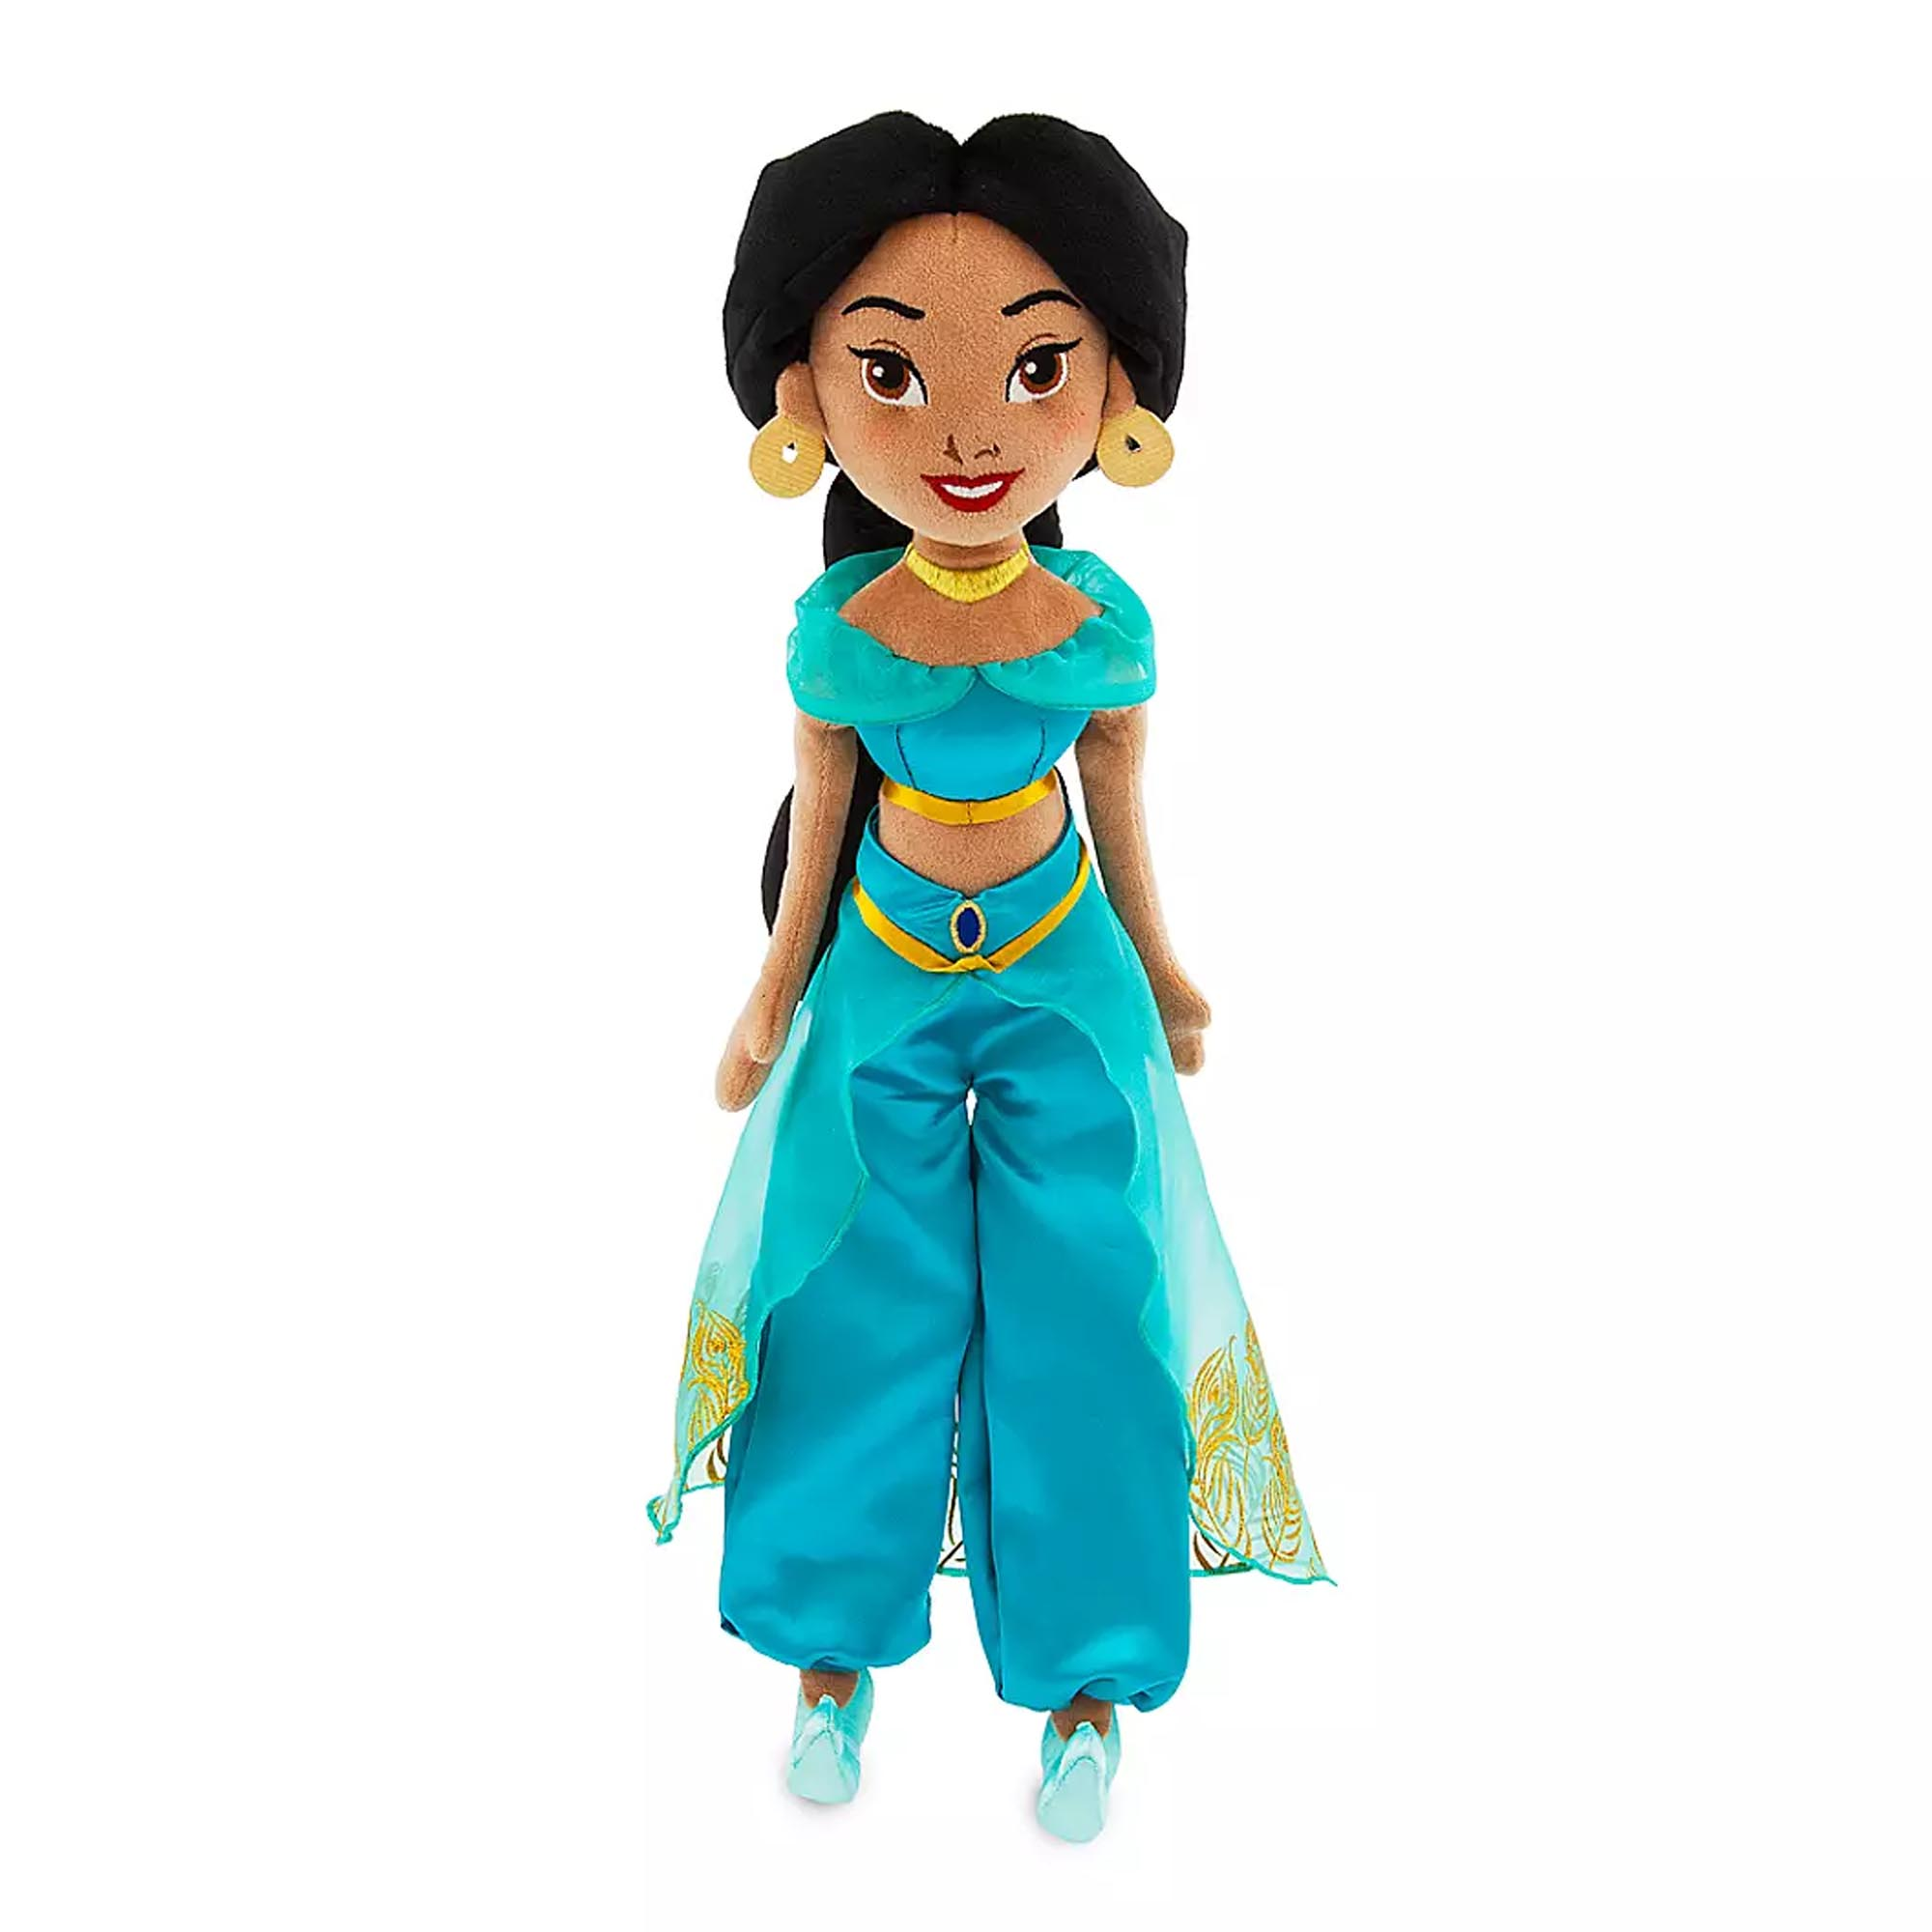 Disney Aladdin Princess Jasmine Large Plush Doll Genuine Disney